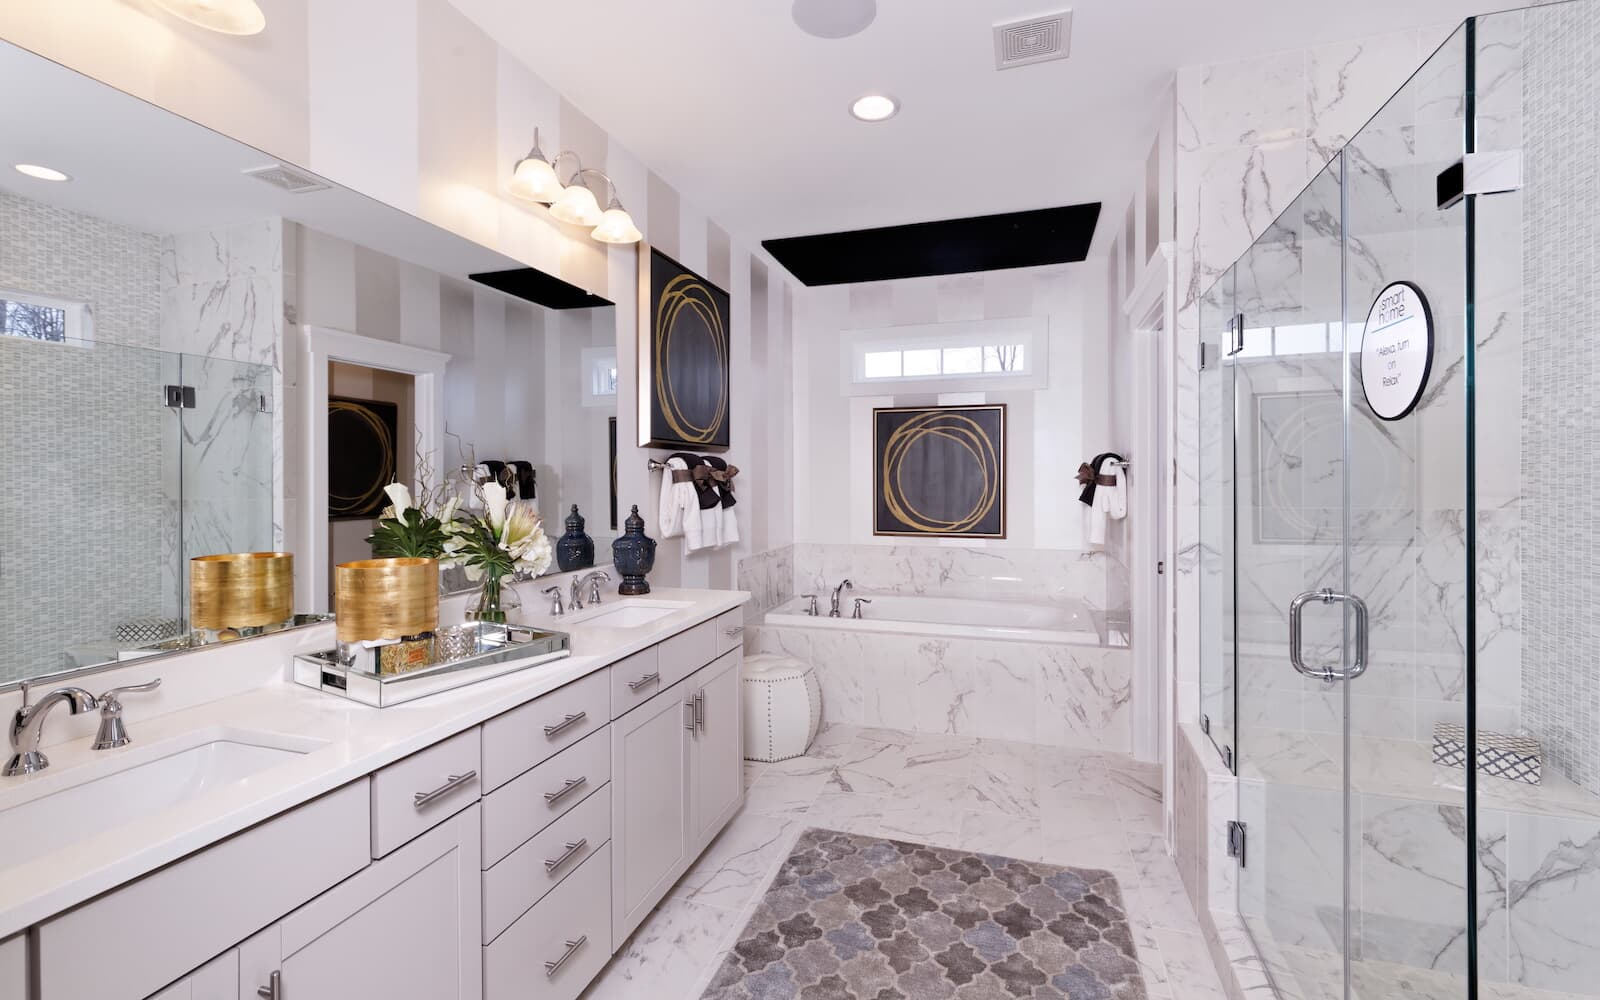 Kensington-owners-bathroom-single-family-home-bristow-va-avendale-brookfield-residential